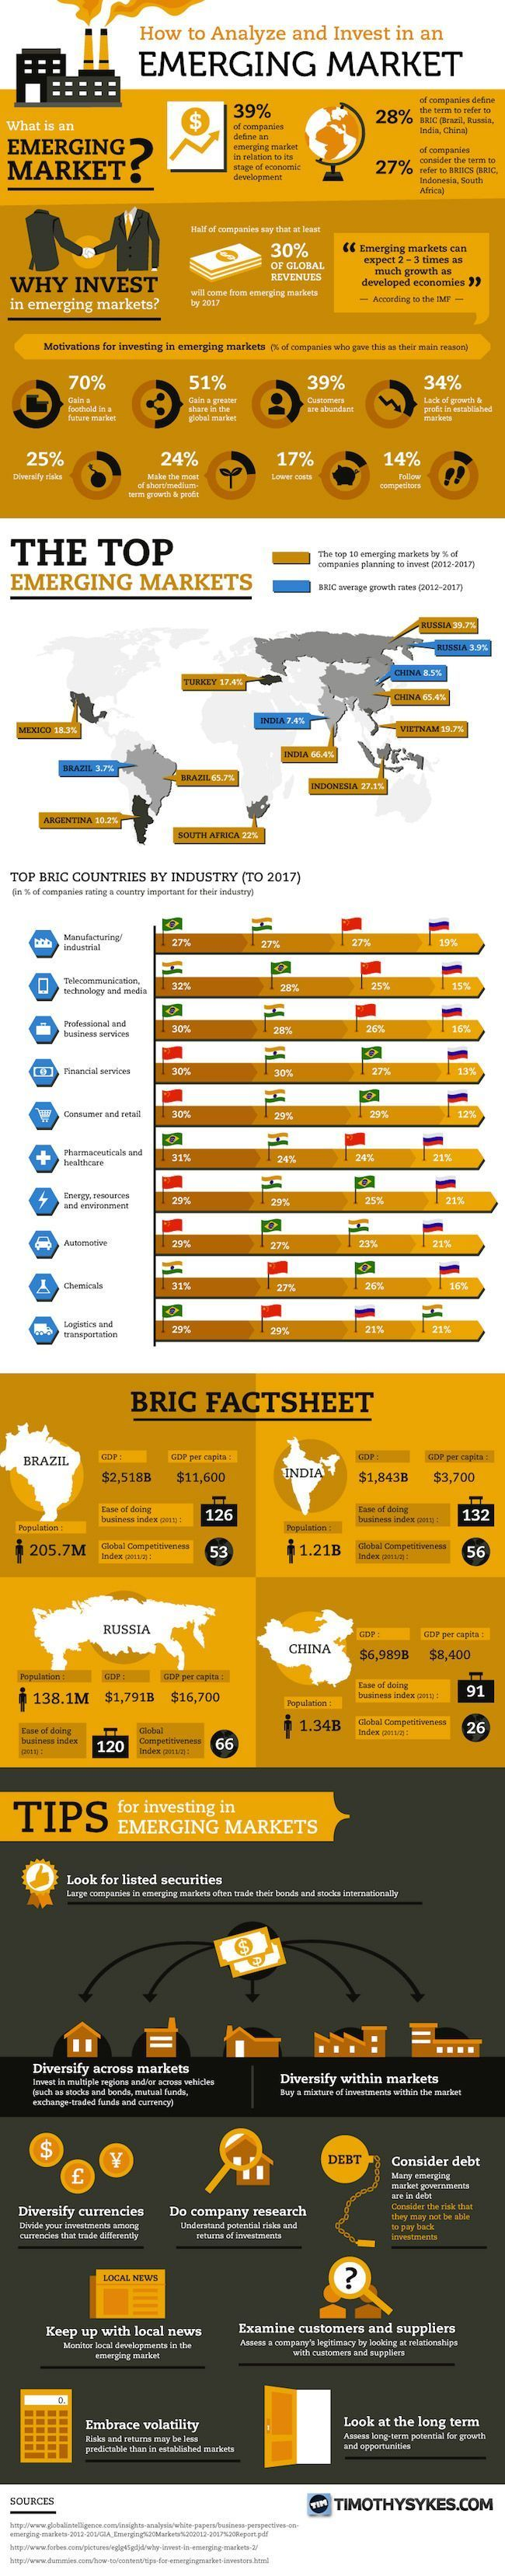 Tips for Investing in Emerging Markets (Infographic) | Reich werden ...